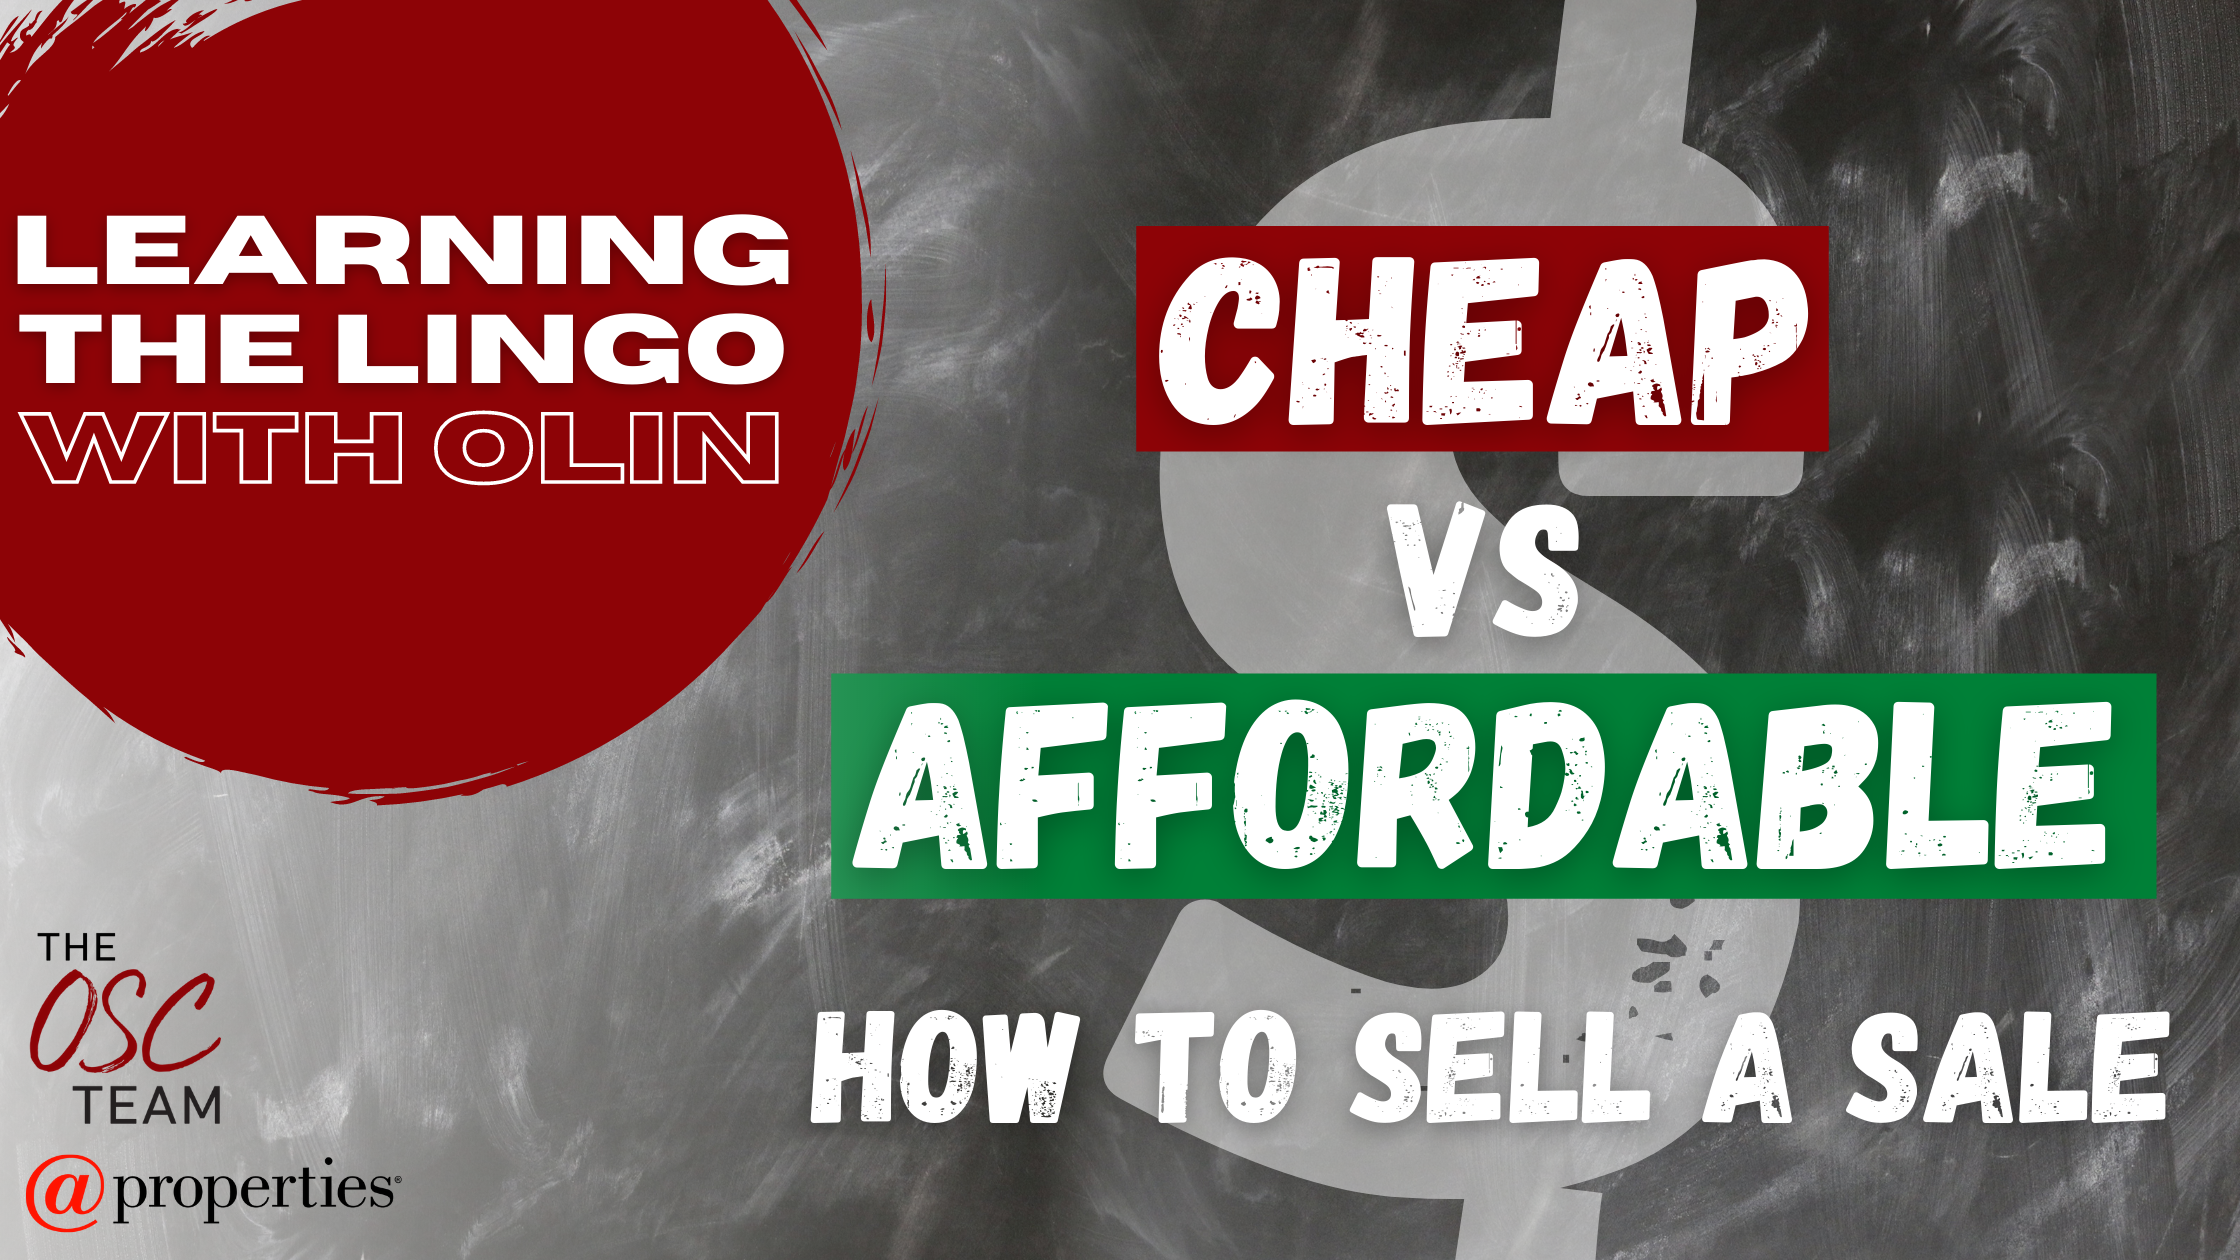 Learning the Lingo with Olin - Cheap vs. Affordable